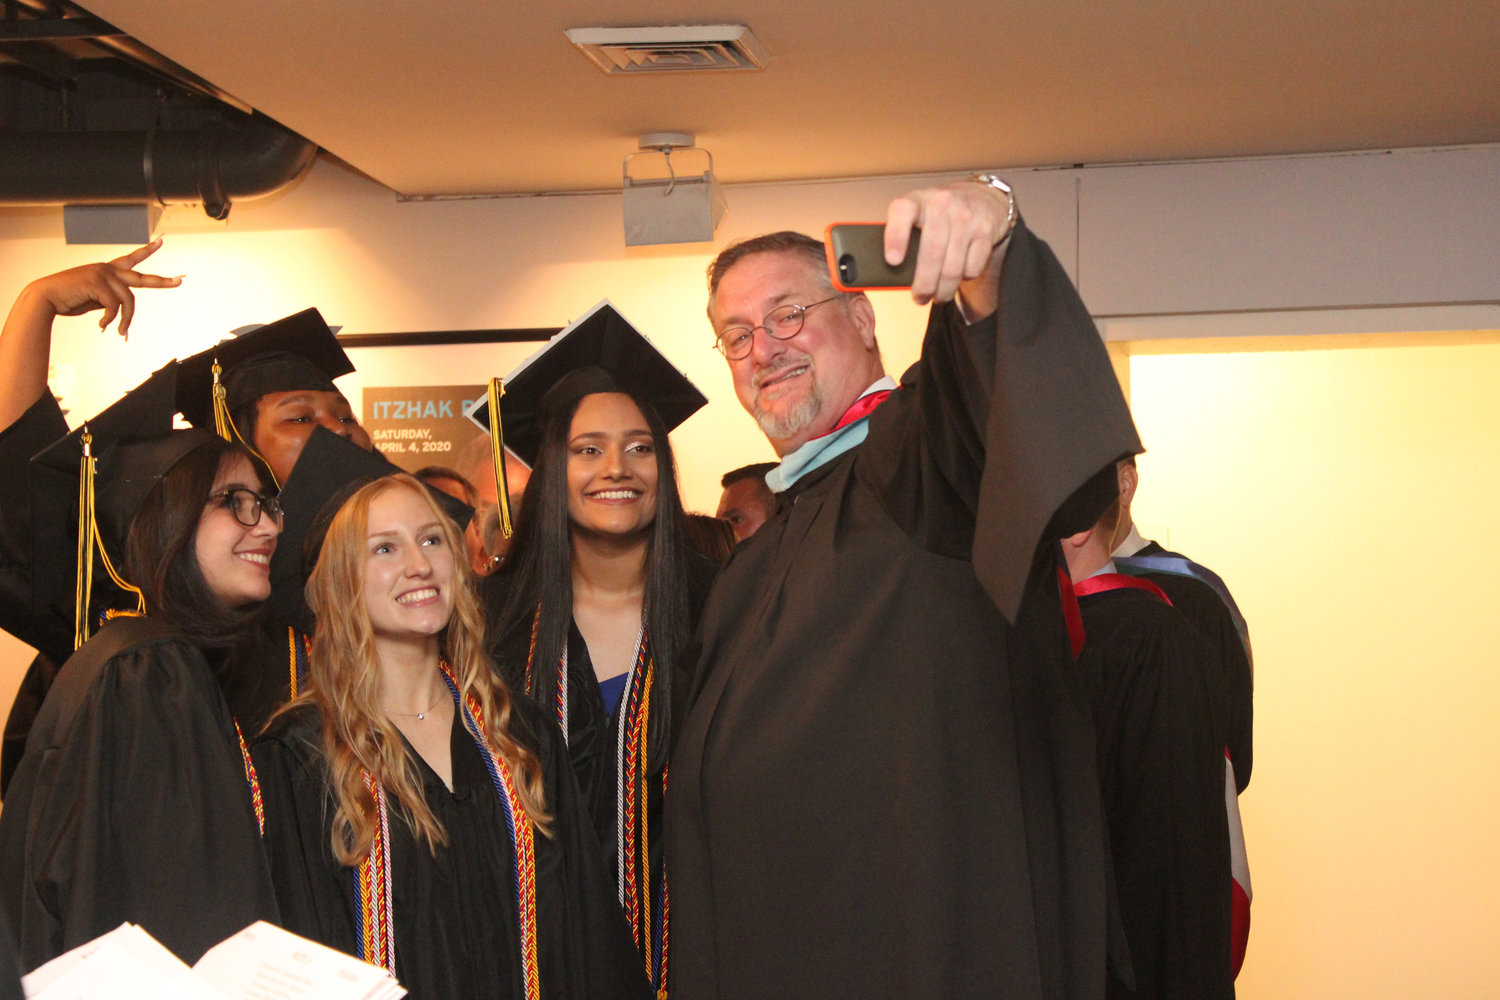 West Hempstead Schools Superintendent Daniel Rehman with, from left, Valedictorian Marisa Sheehan, senior class Co-president Autumn Collins, Salutatorian Isabella Caldwell and Co-president Harpinder Kaur before graduation last Sunday at LIU Post.